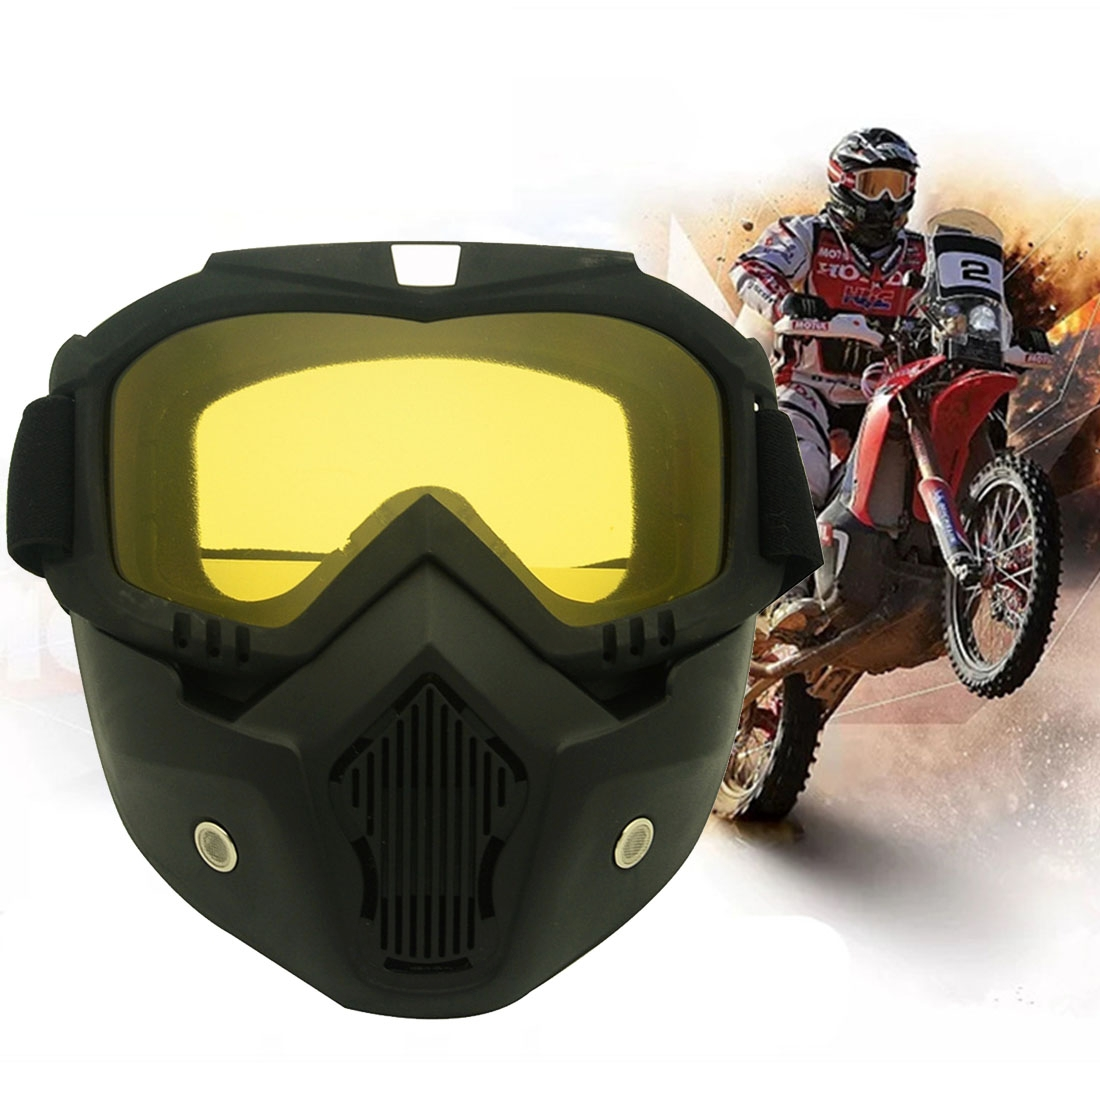 Motorcycle Off-road Helmet Mask Detachable Windproof Goggles Glasses (Yellow)